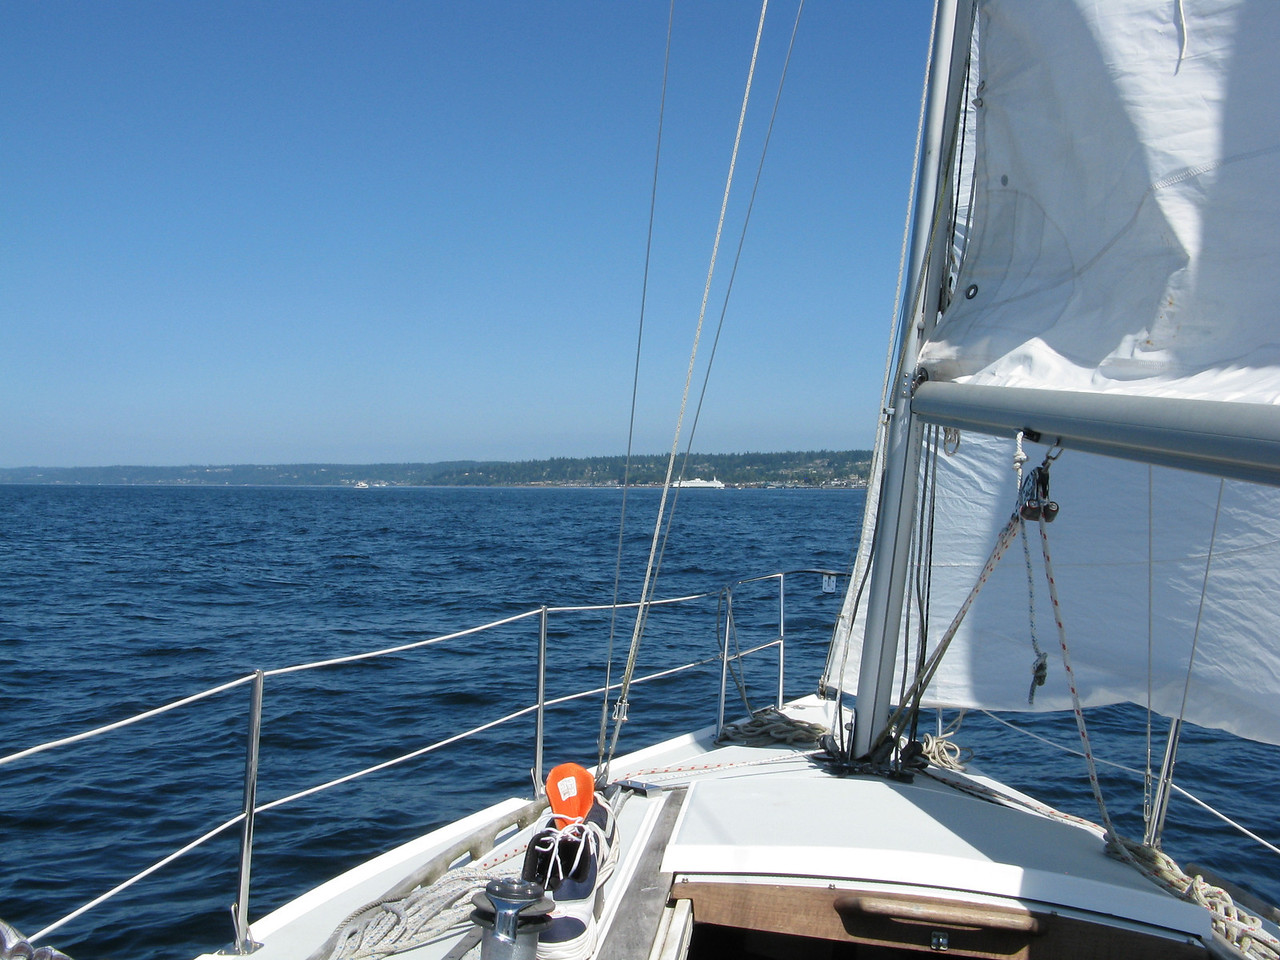 'We continued with the sails close hauled as we headed east to Edmonds.